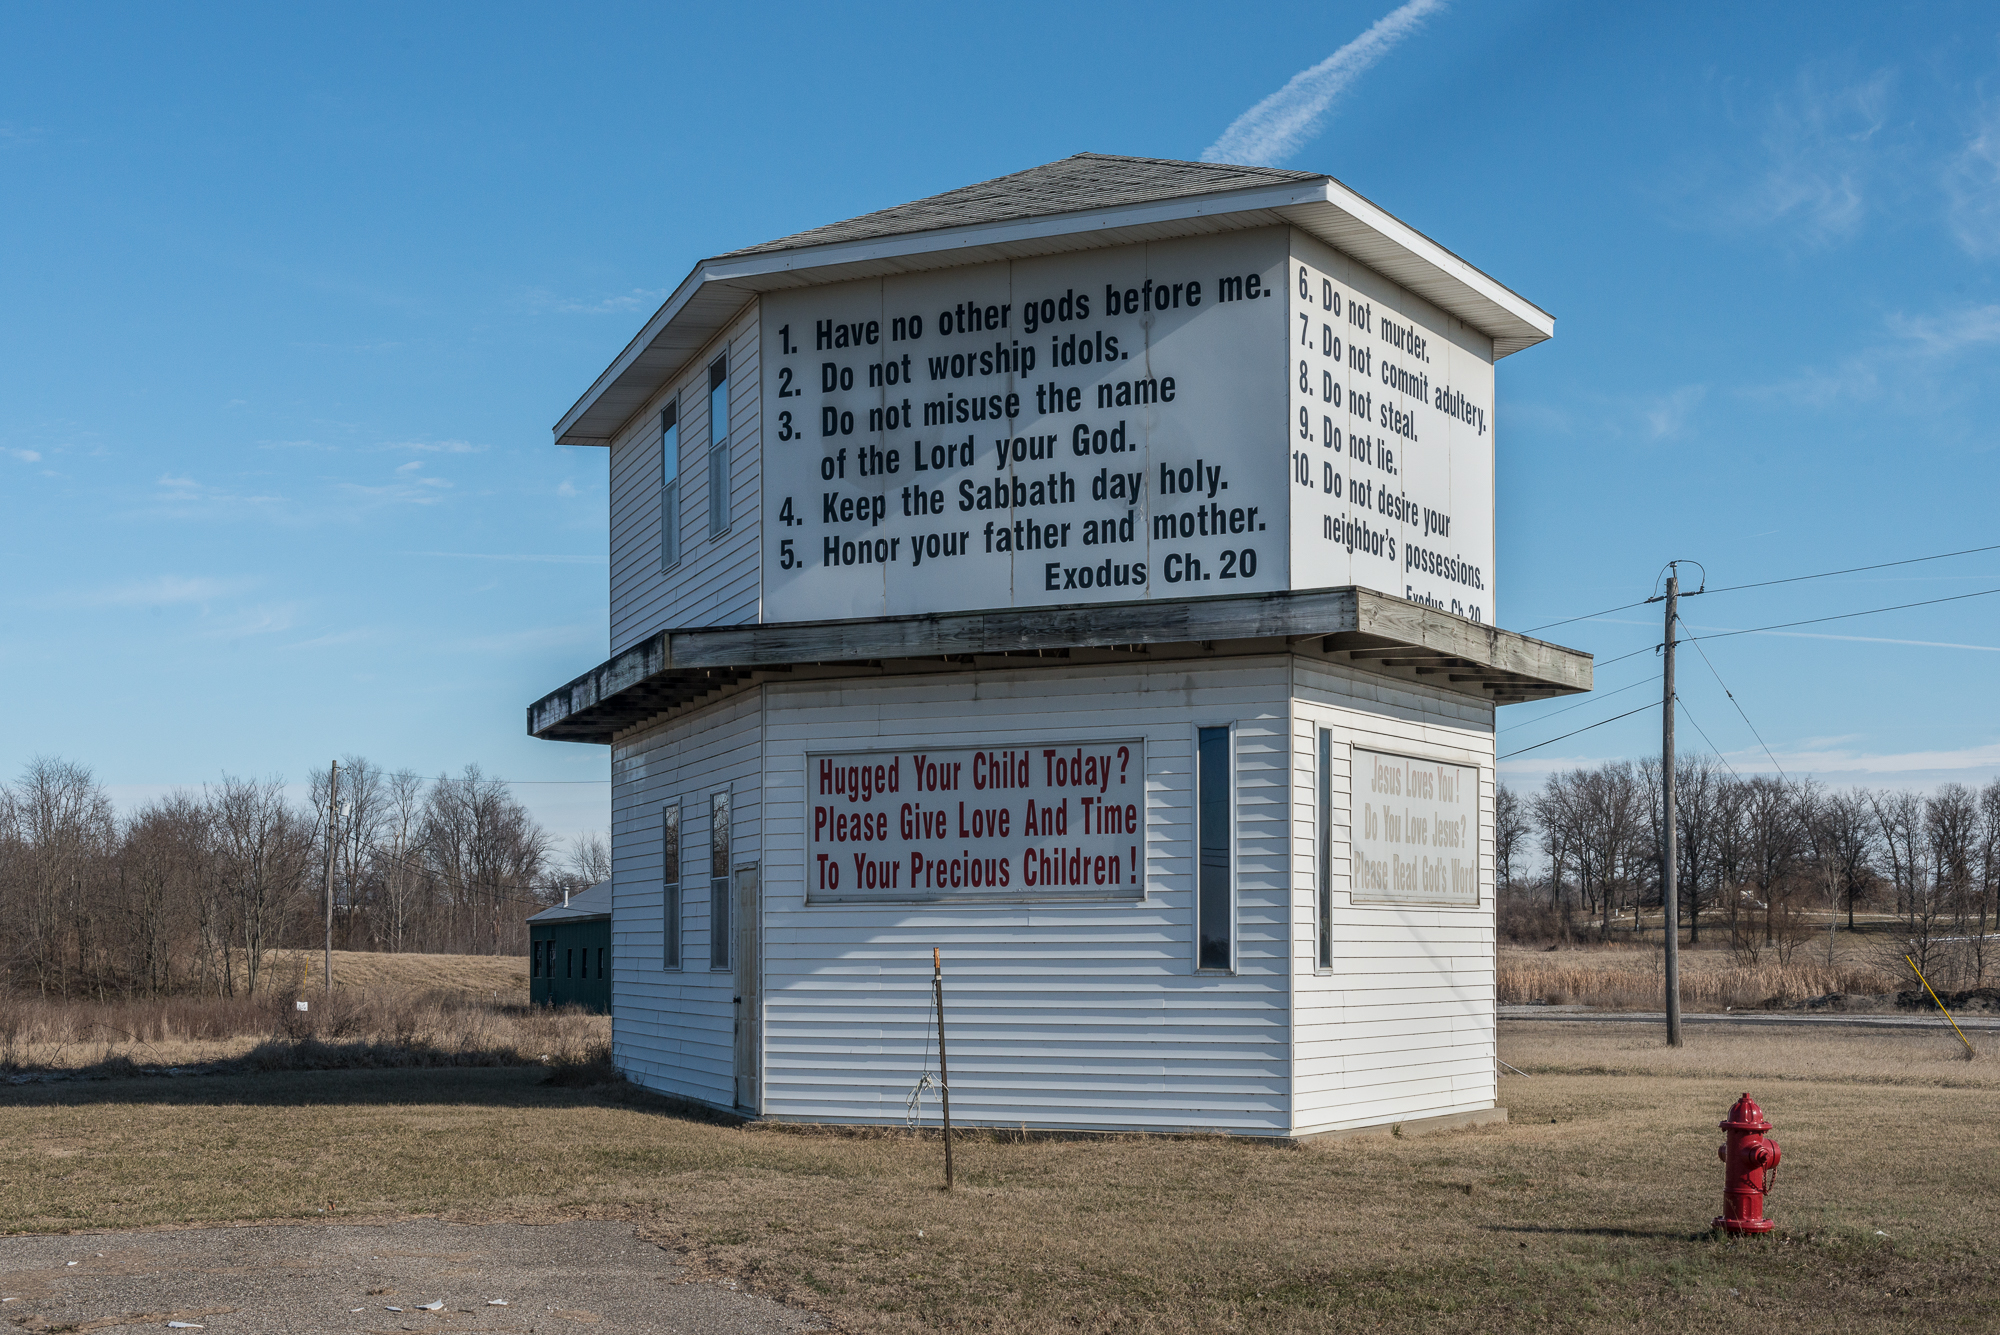 Commandments, Bicknell, Indiana, 2017